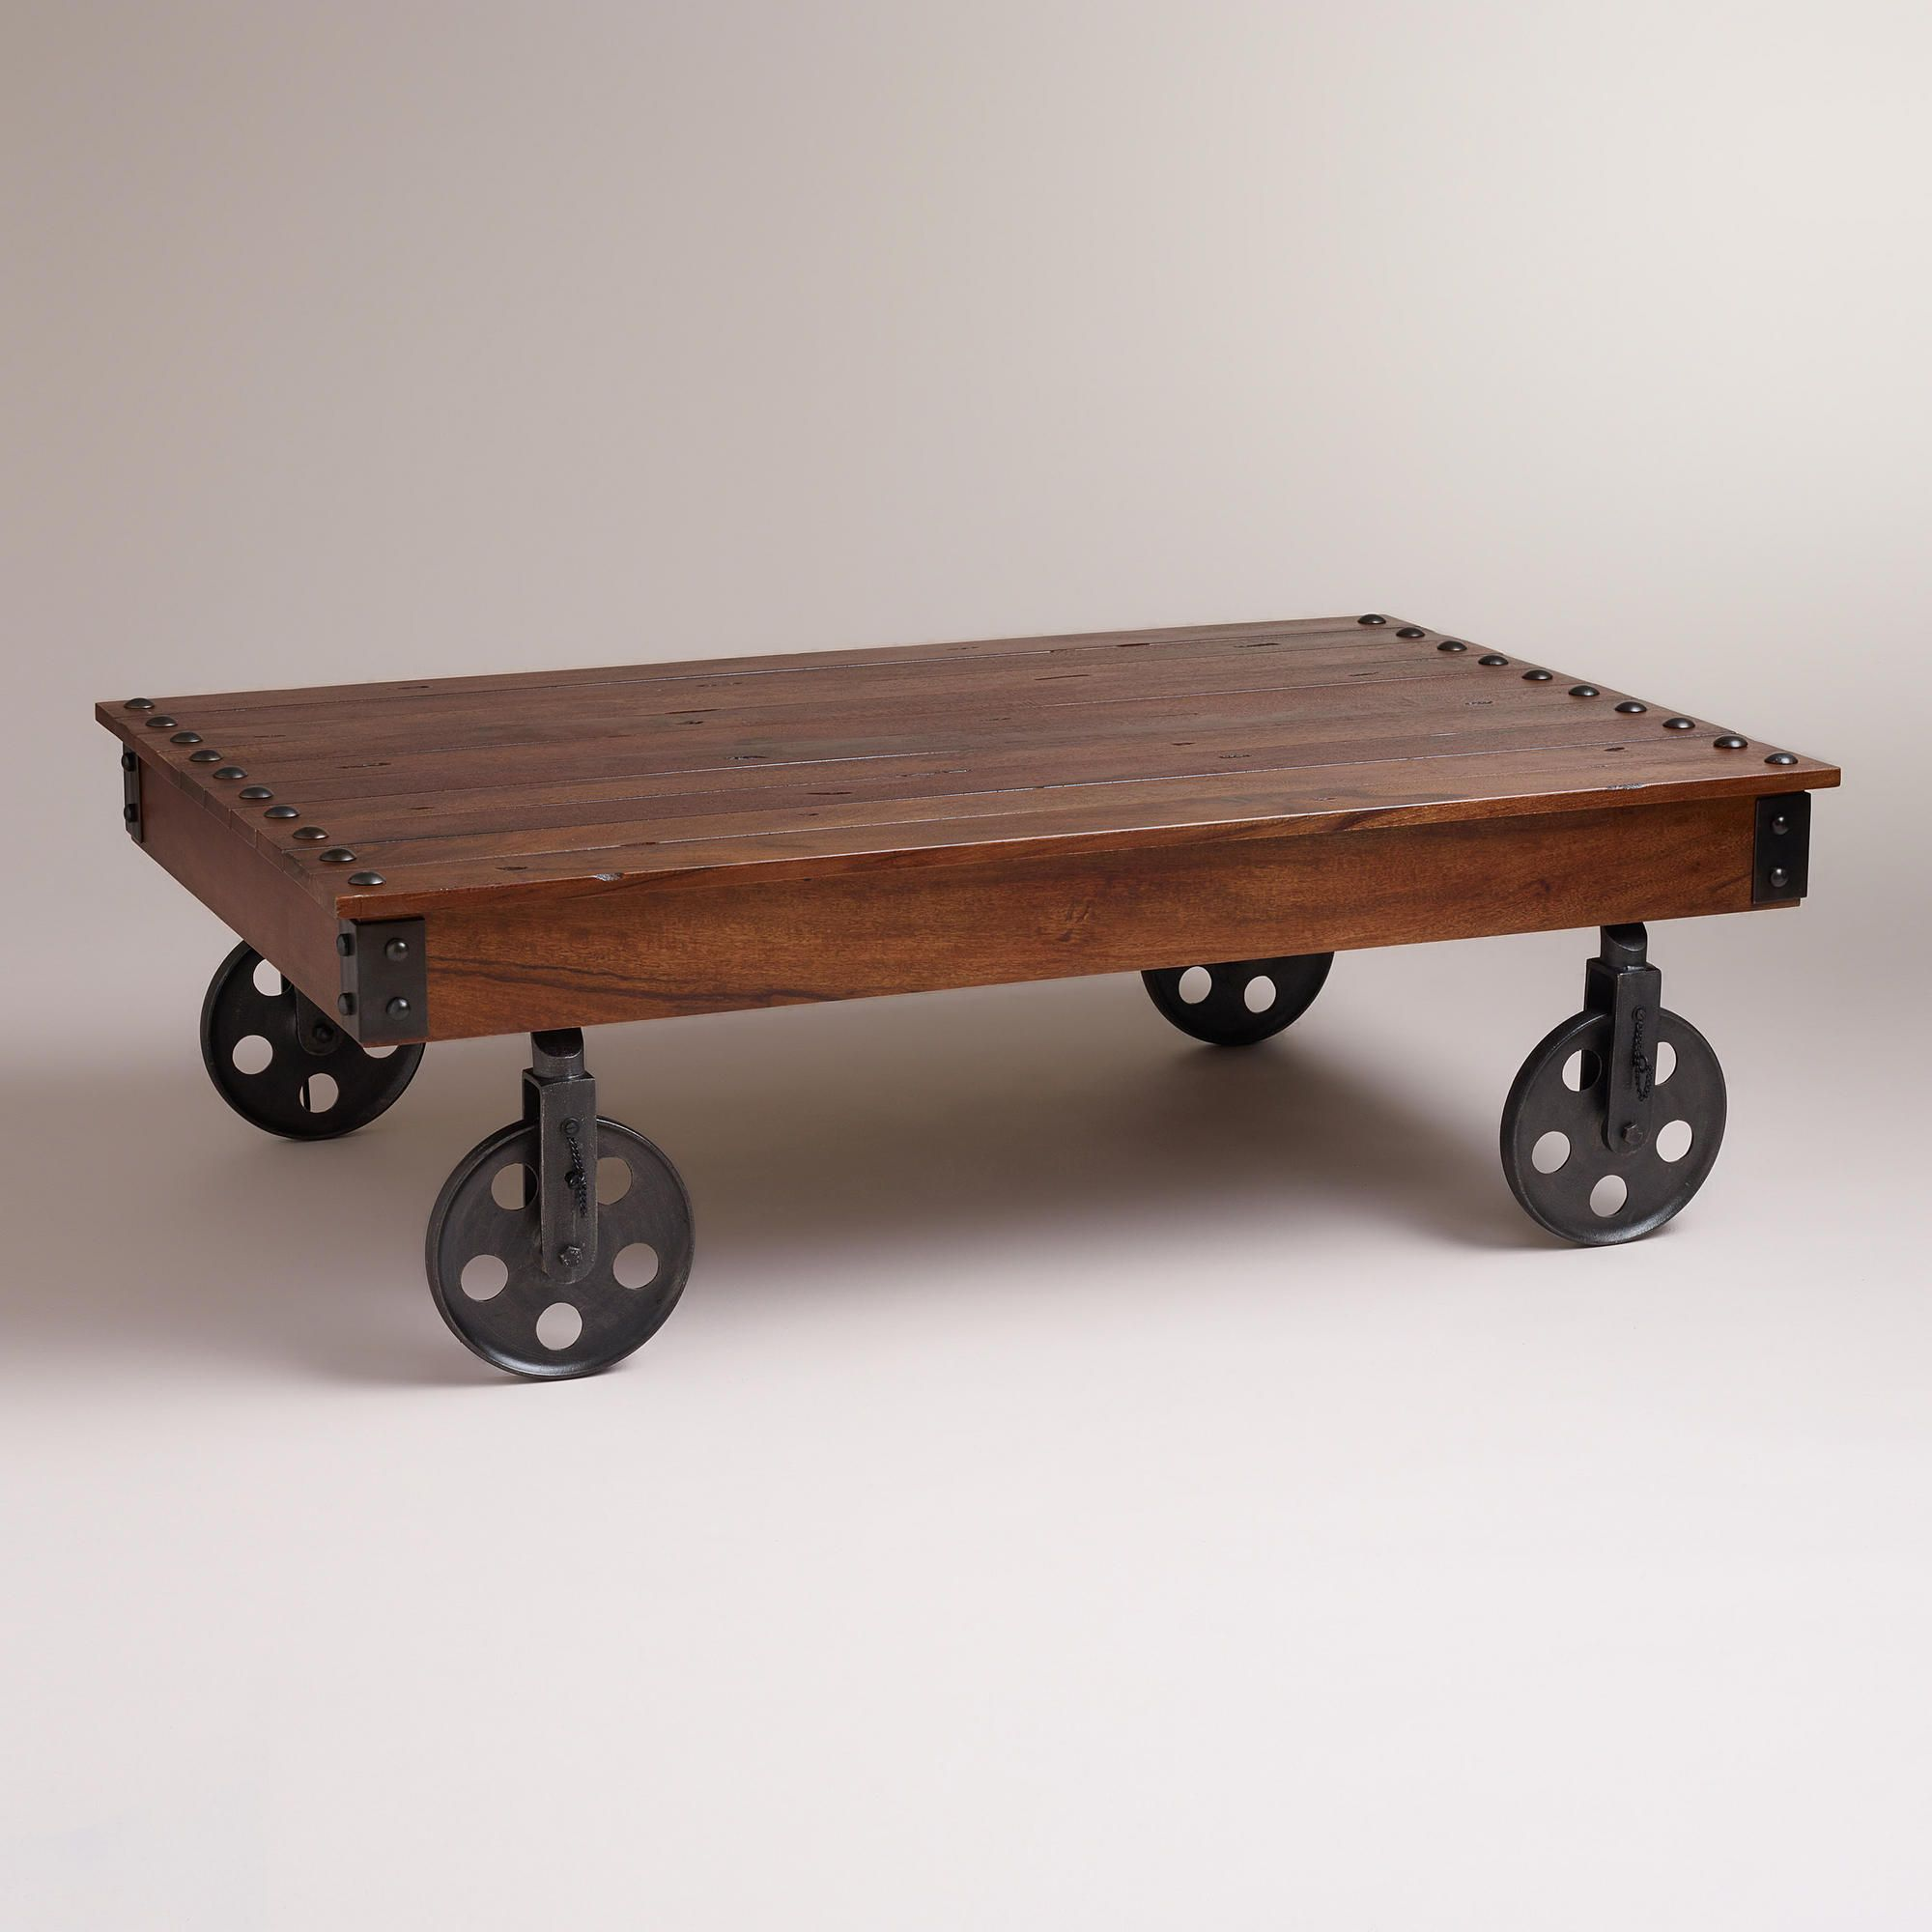 Henry Coffee Table Crafted Of Solid Mango Wood In India With A